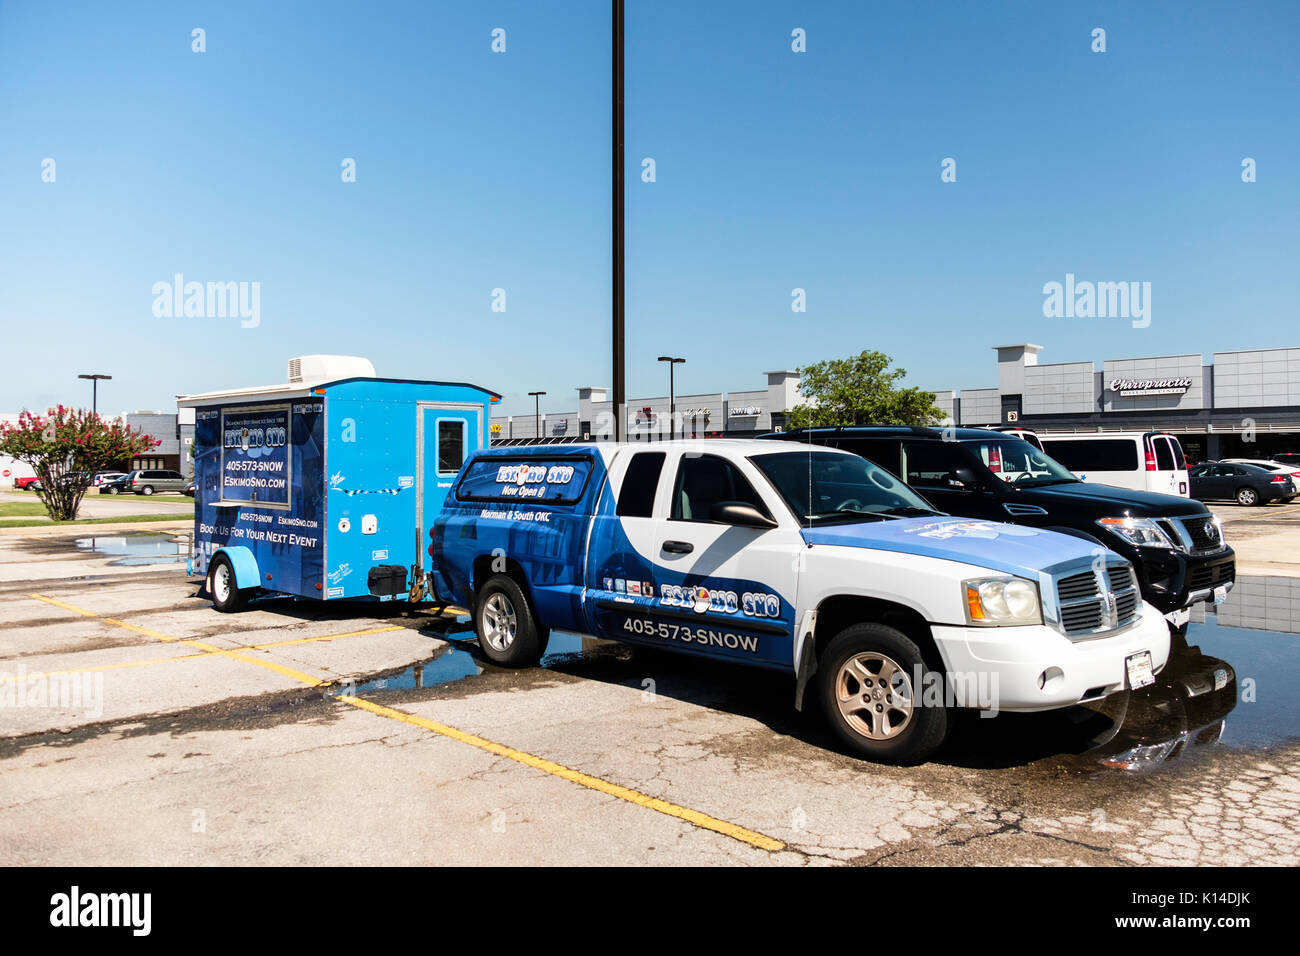 A Sno Cone trailer  hitched to an automobile, advertising Sno Cones,called EskimoSno. Parked in a parking lot in Norman, Oklahoma, USA. - Stock Image